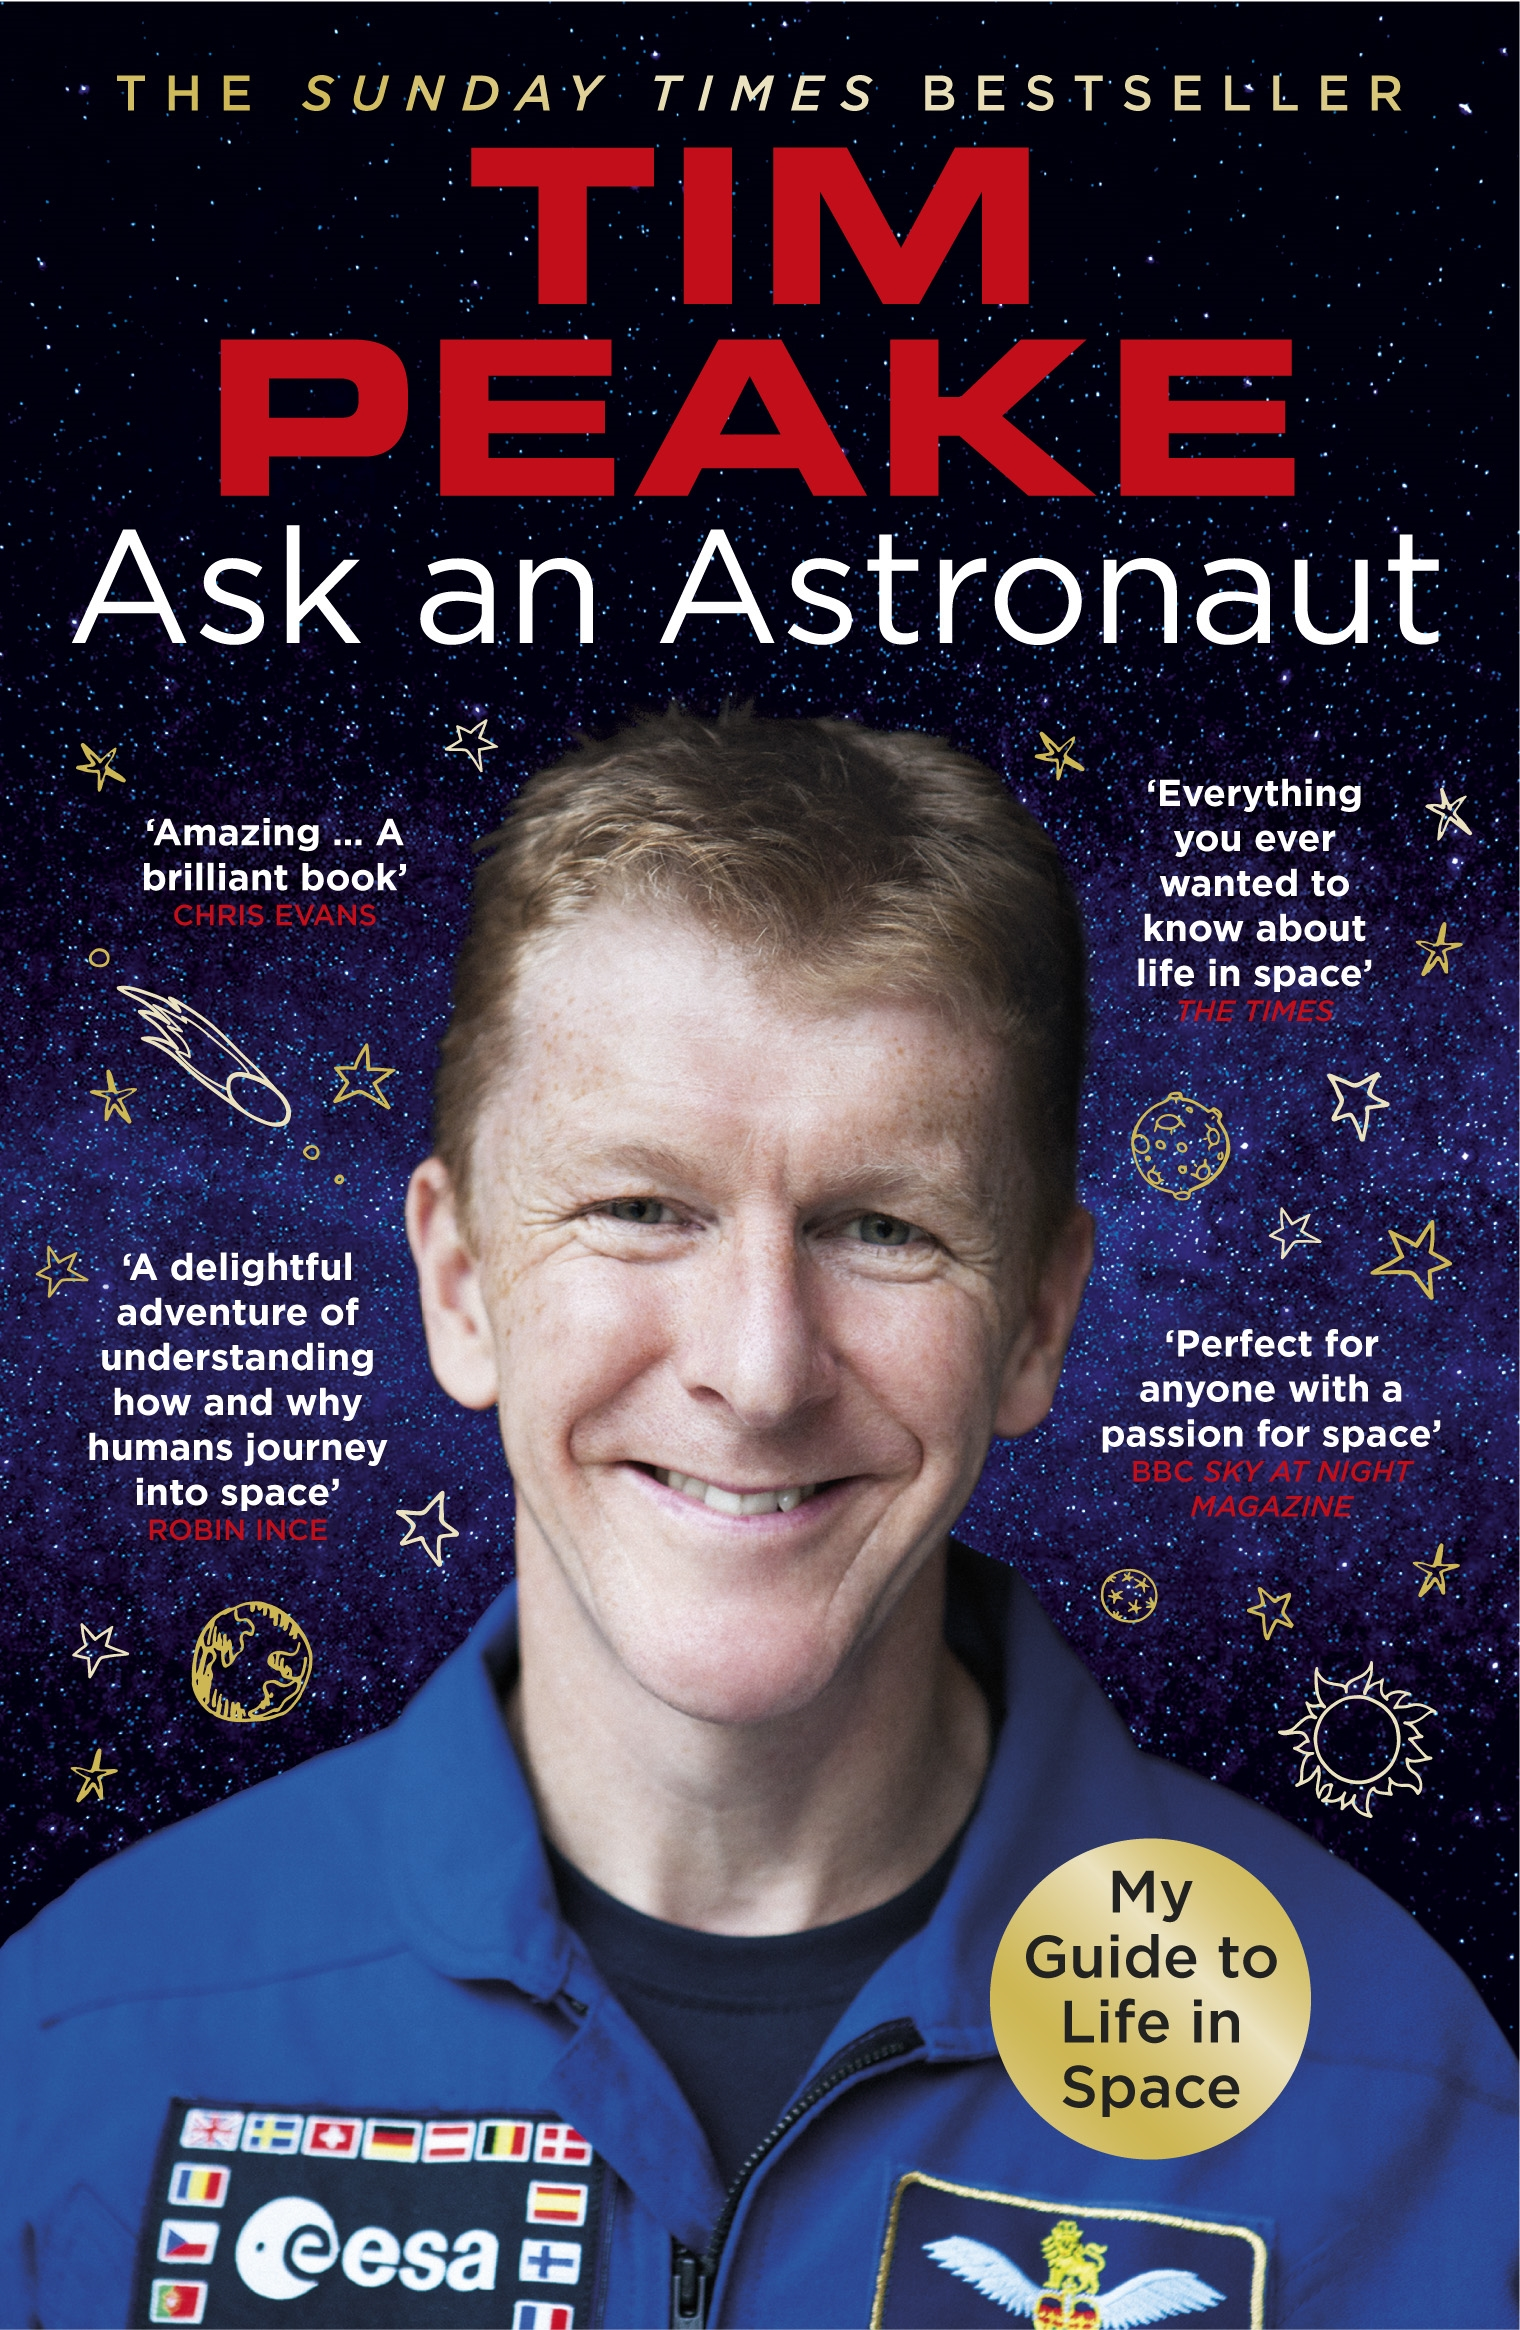 Ask an Astronaut: My Guide to Life in Space (Official Tim Peake Book) by Tim Peake, ISBN: 9781784759483